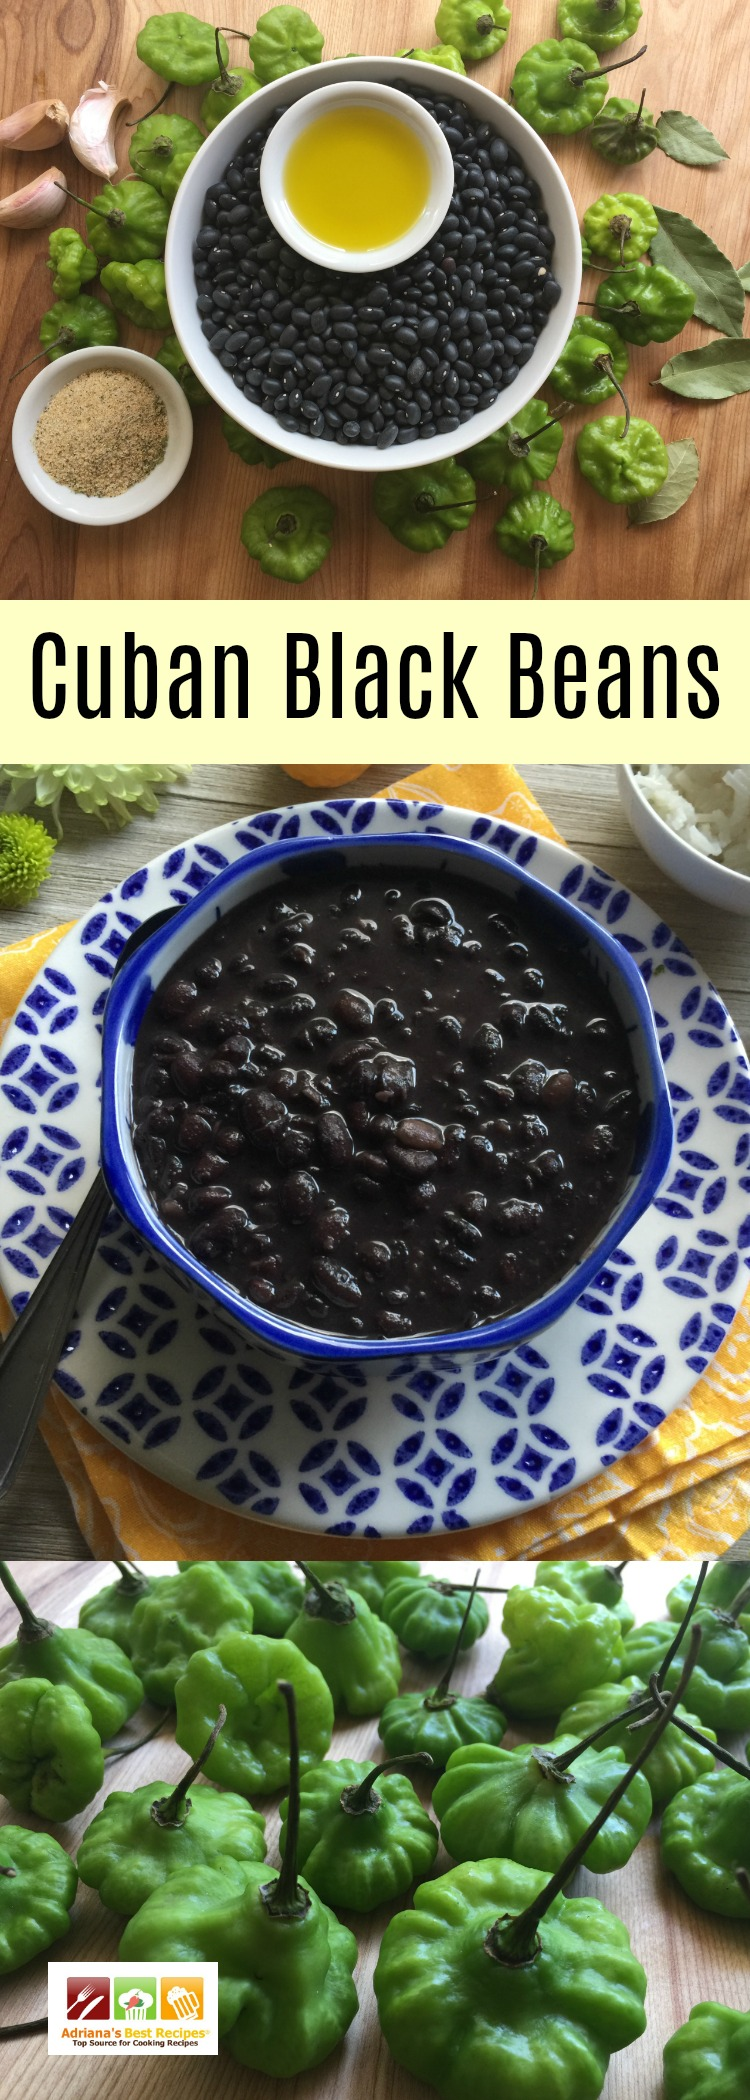 Cuban black beans, a classic family recipe made with dried black beans